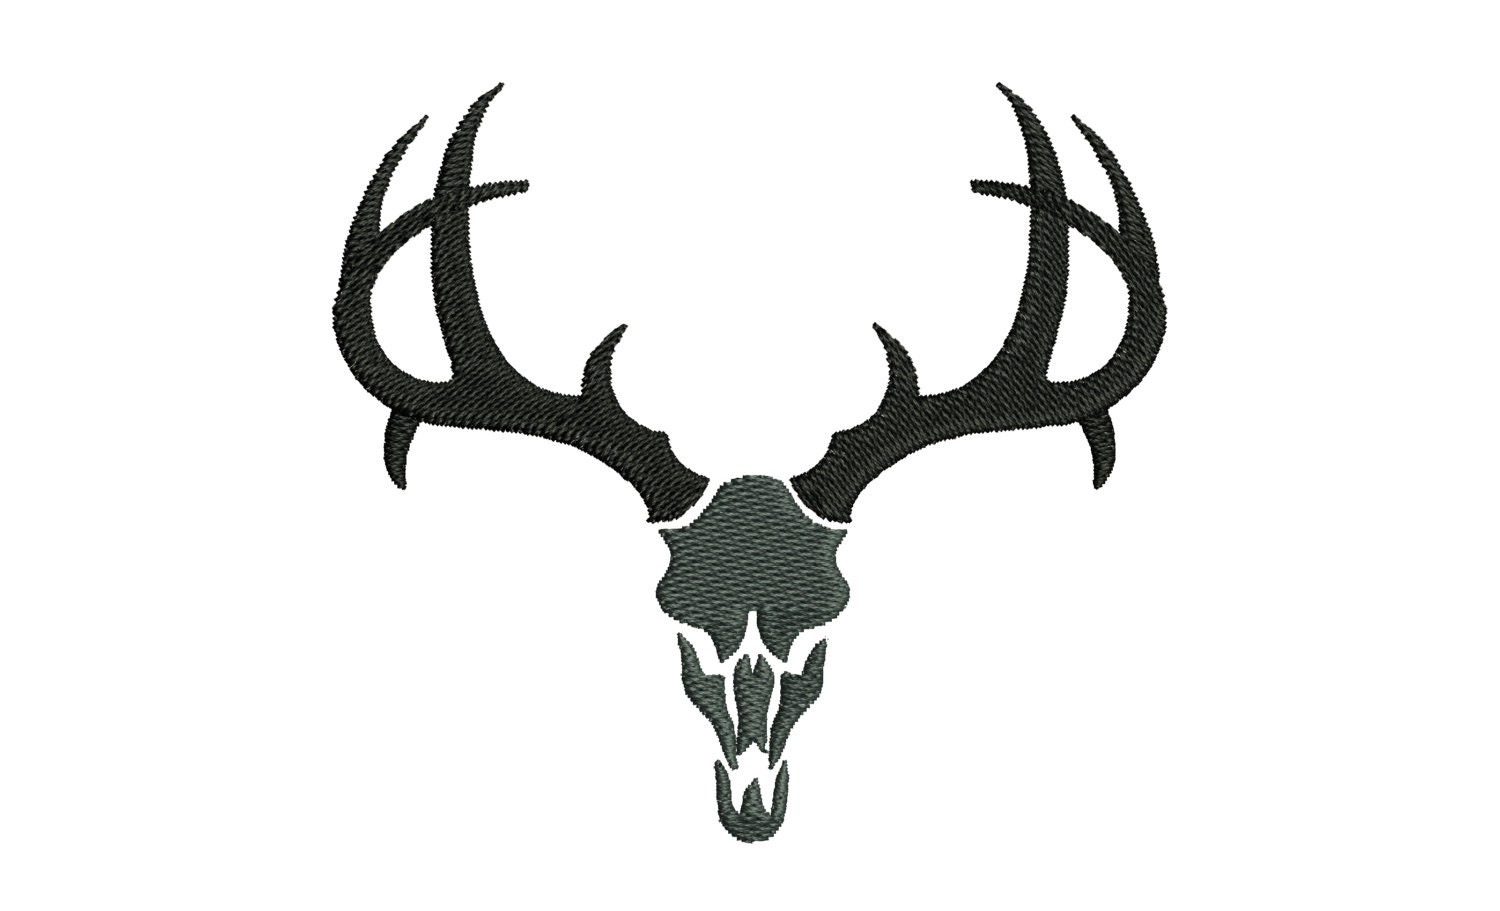 Buck deer skull silhouette embroidery designs many mini sizes